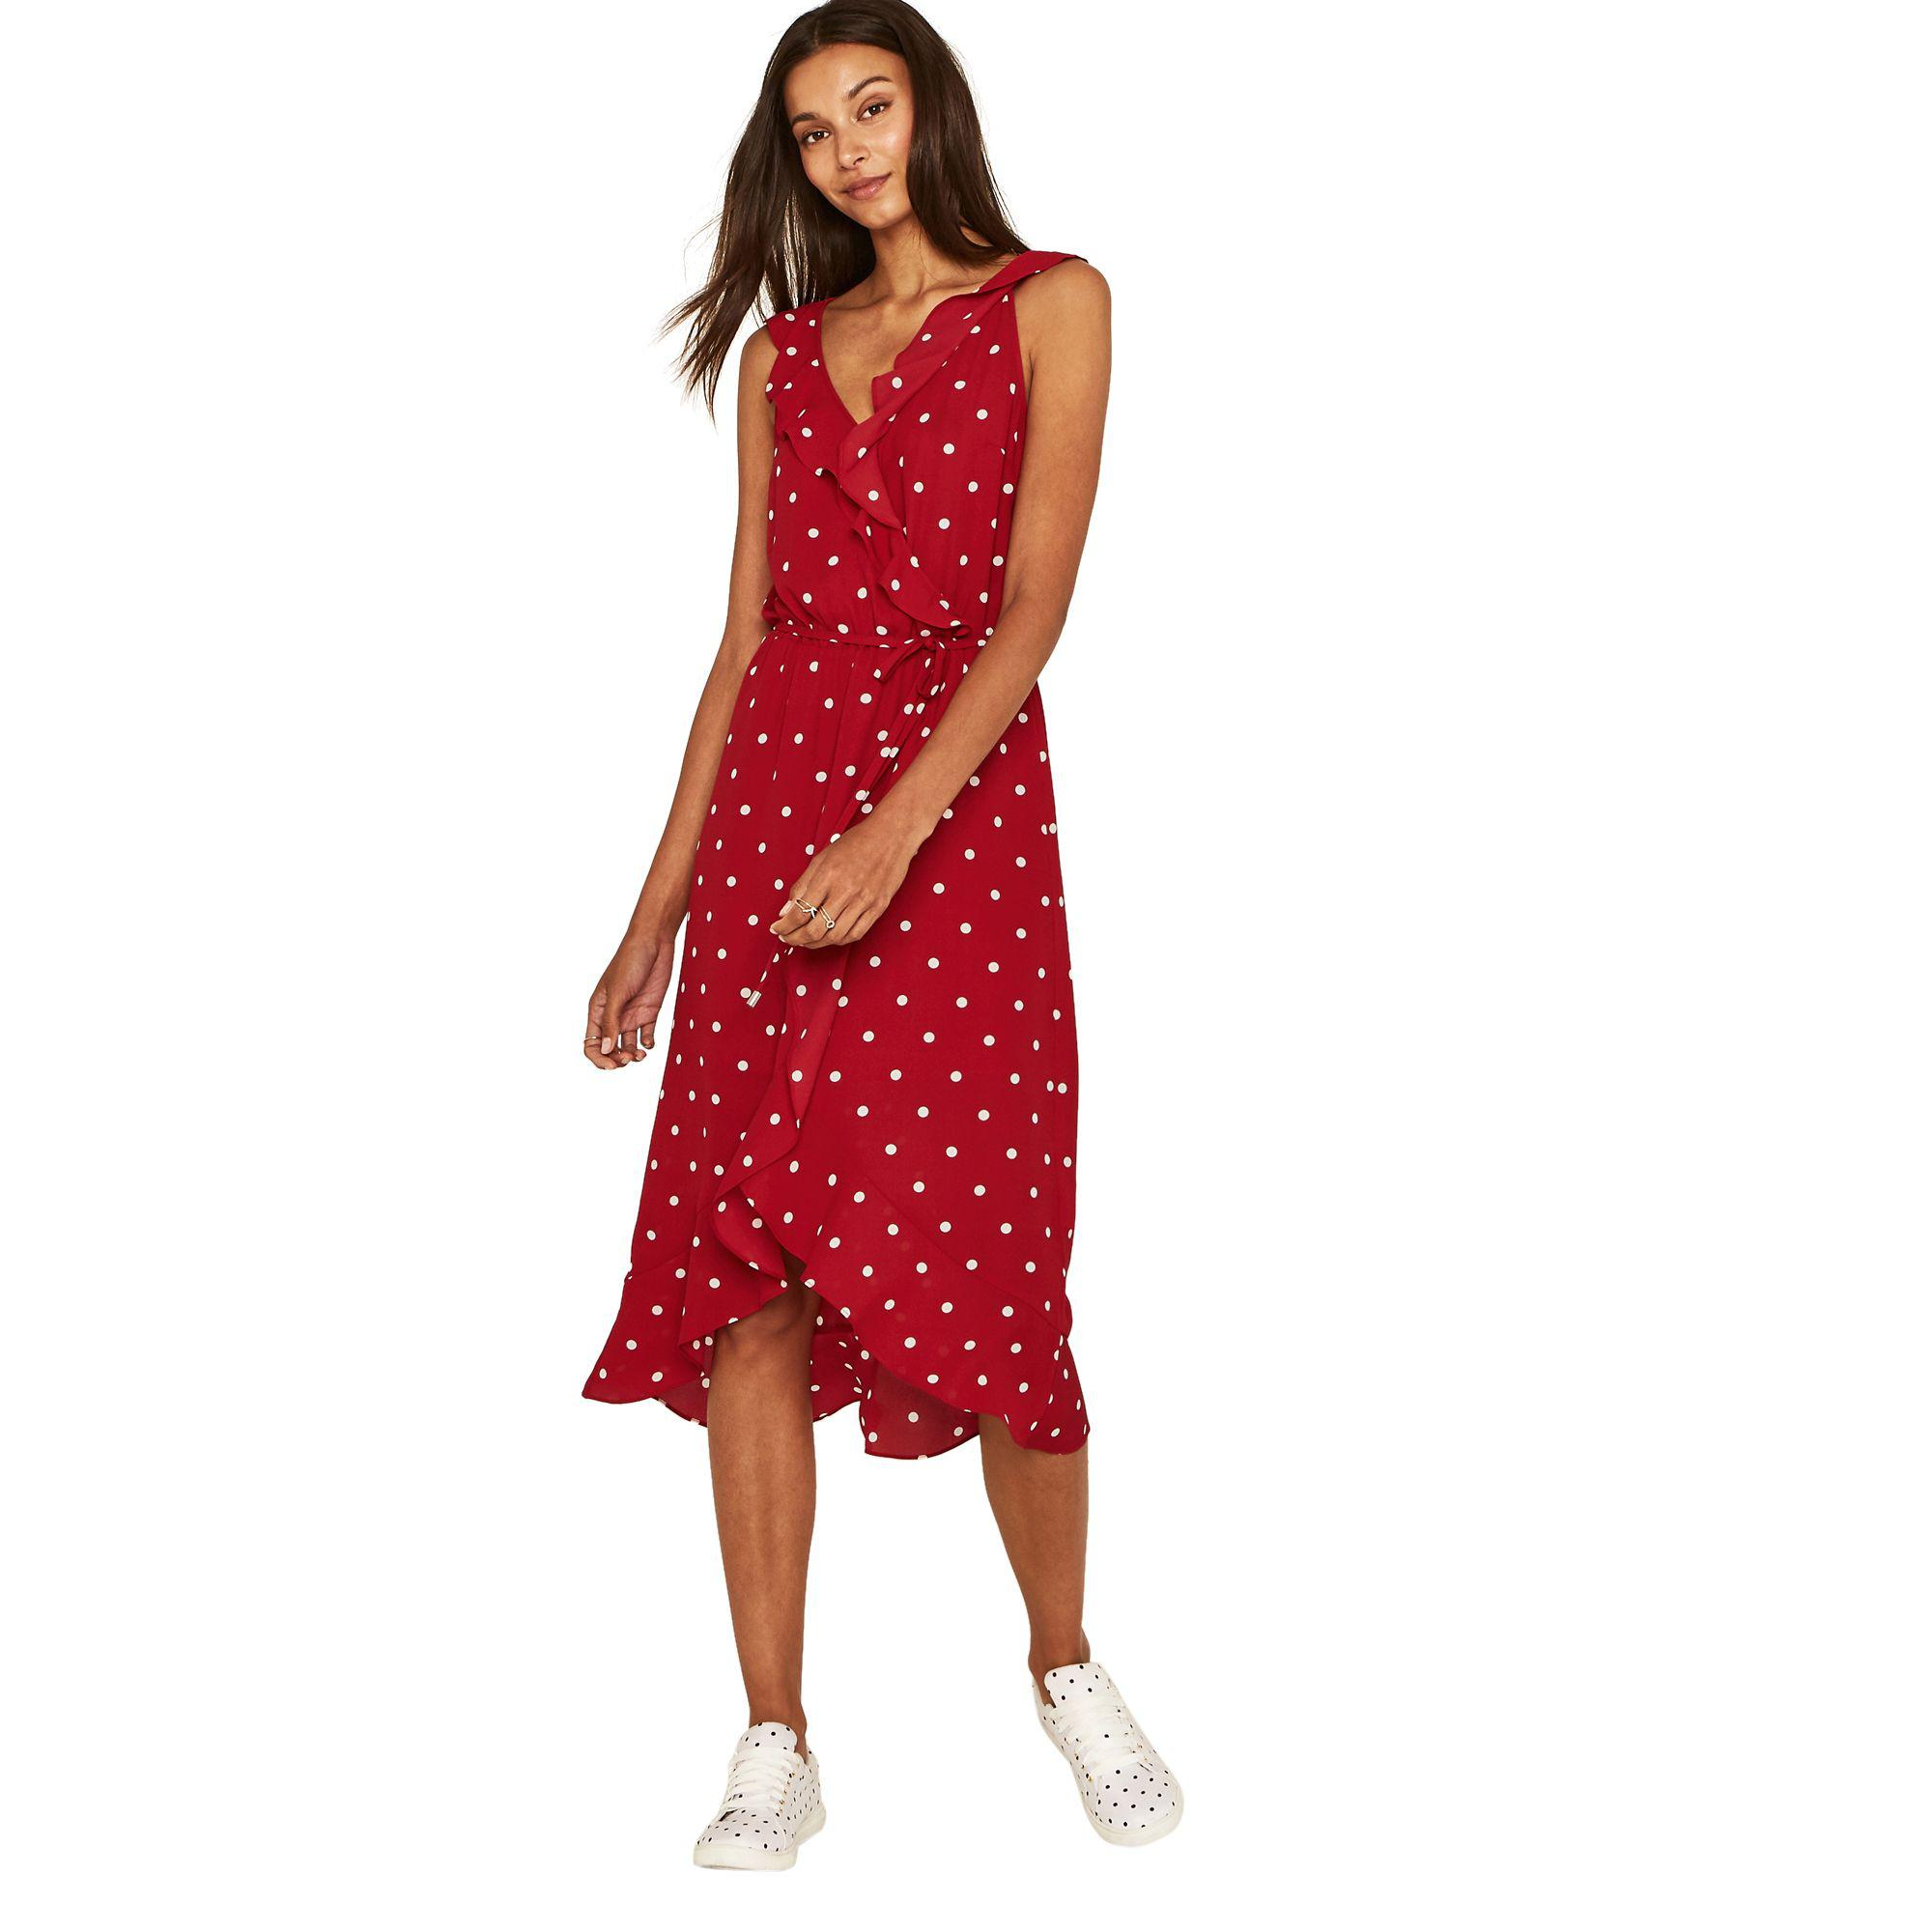 8a7e6542db02 Oasis Multi Red Spot Wrap Midi Dress in Red - Save 61% - Lyst